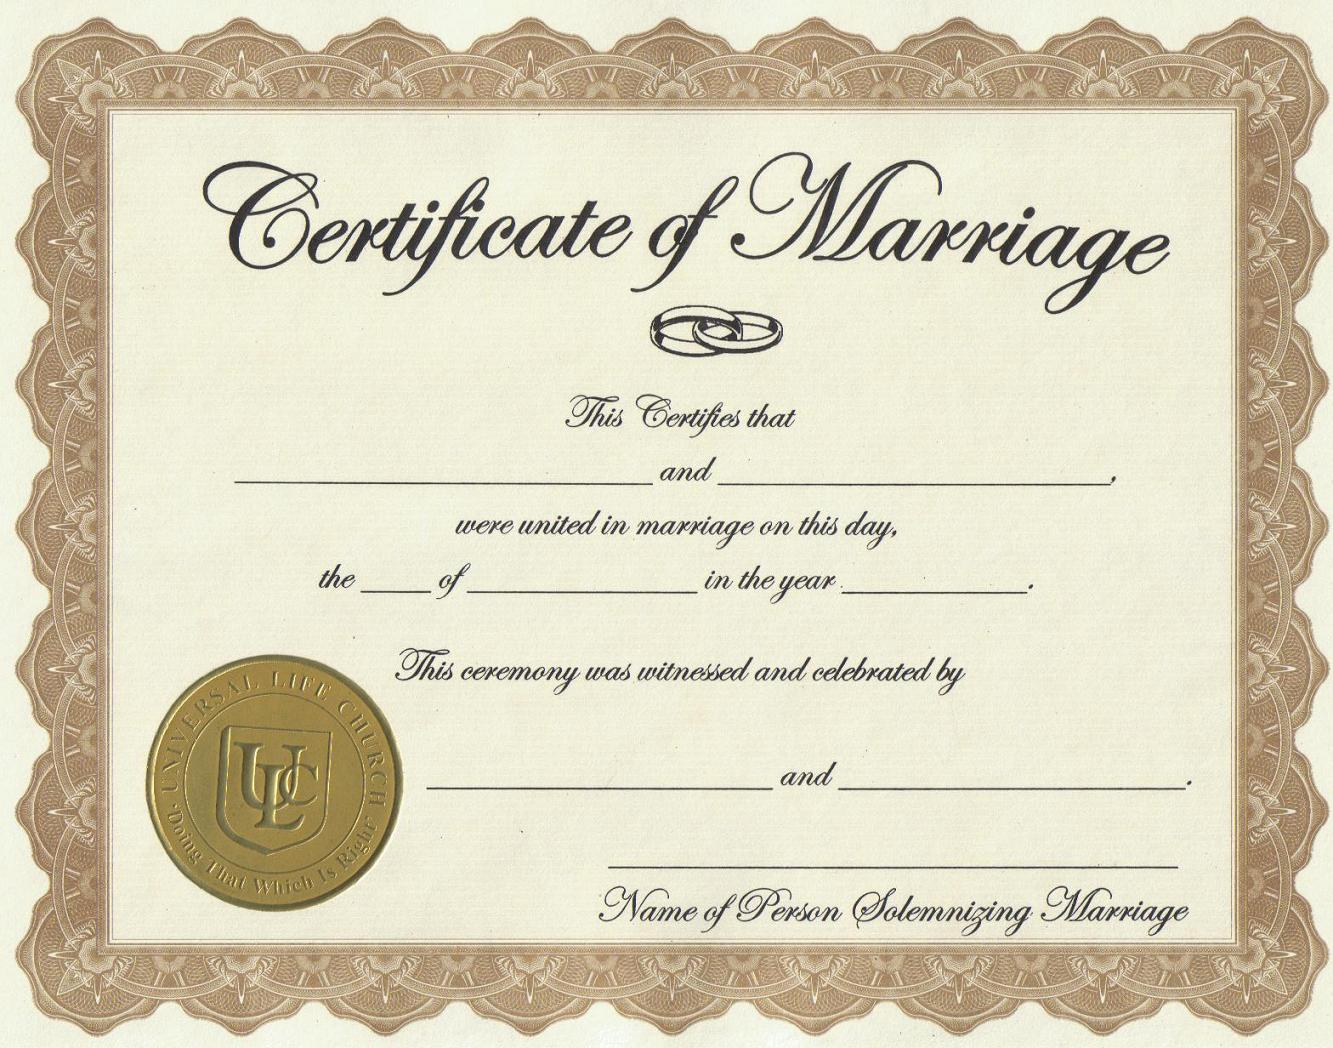 Marriage-License-Printable-Achievement-Certificate-Template - Free Printable Wedding Certificates